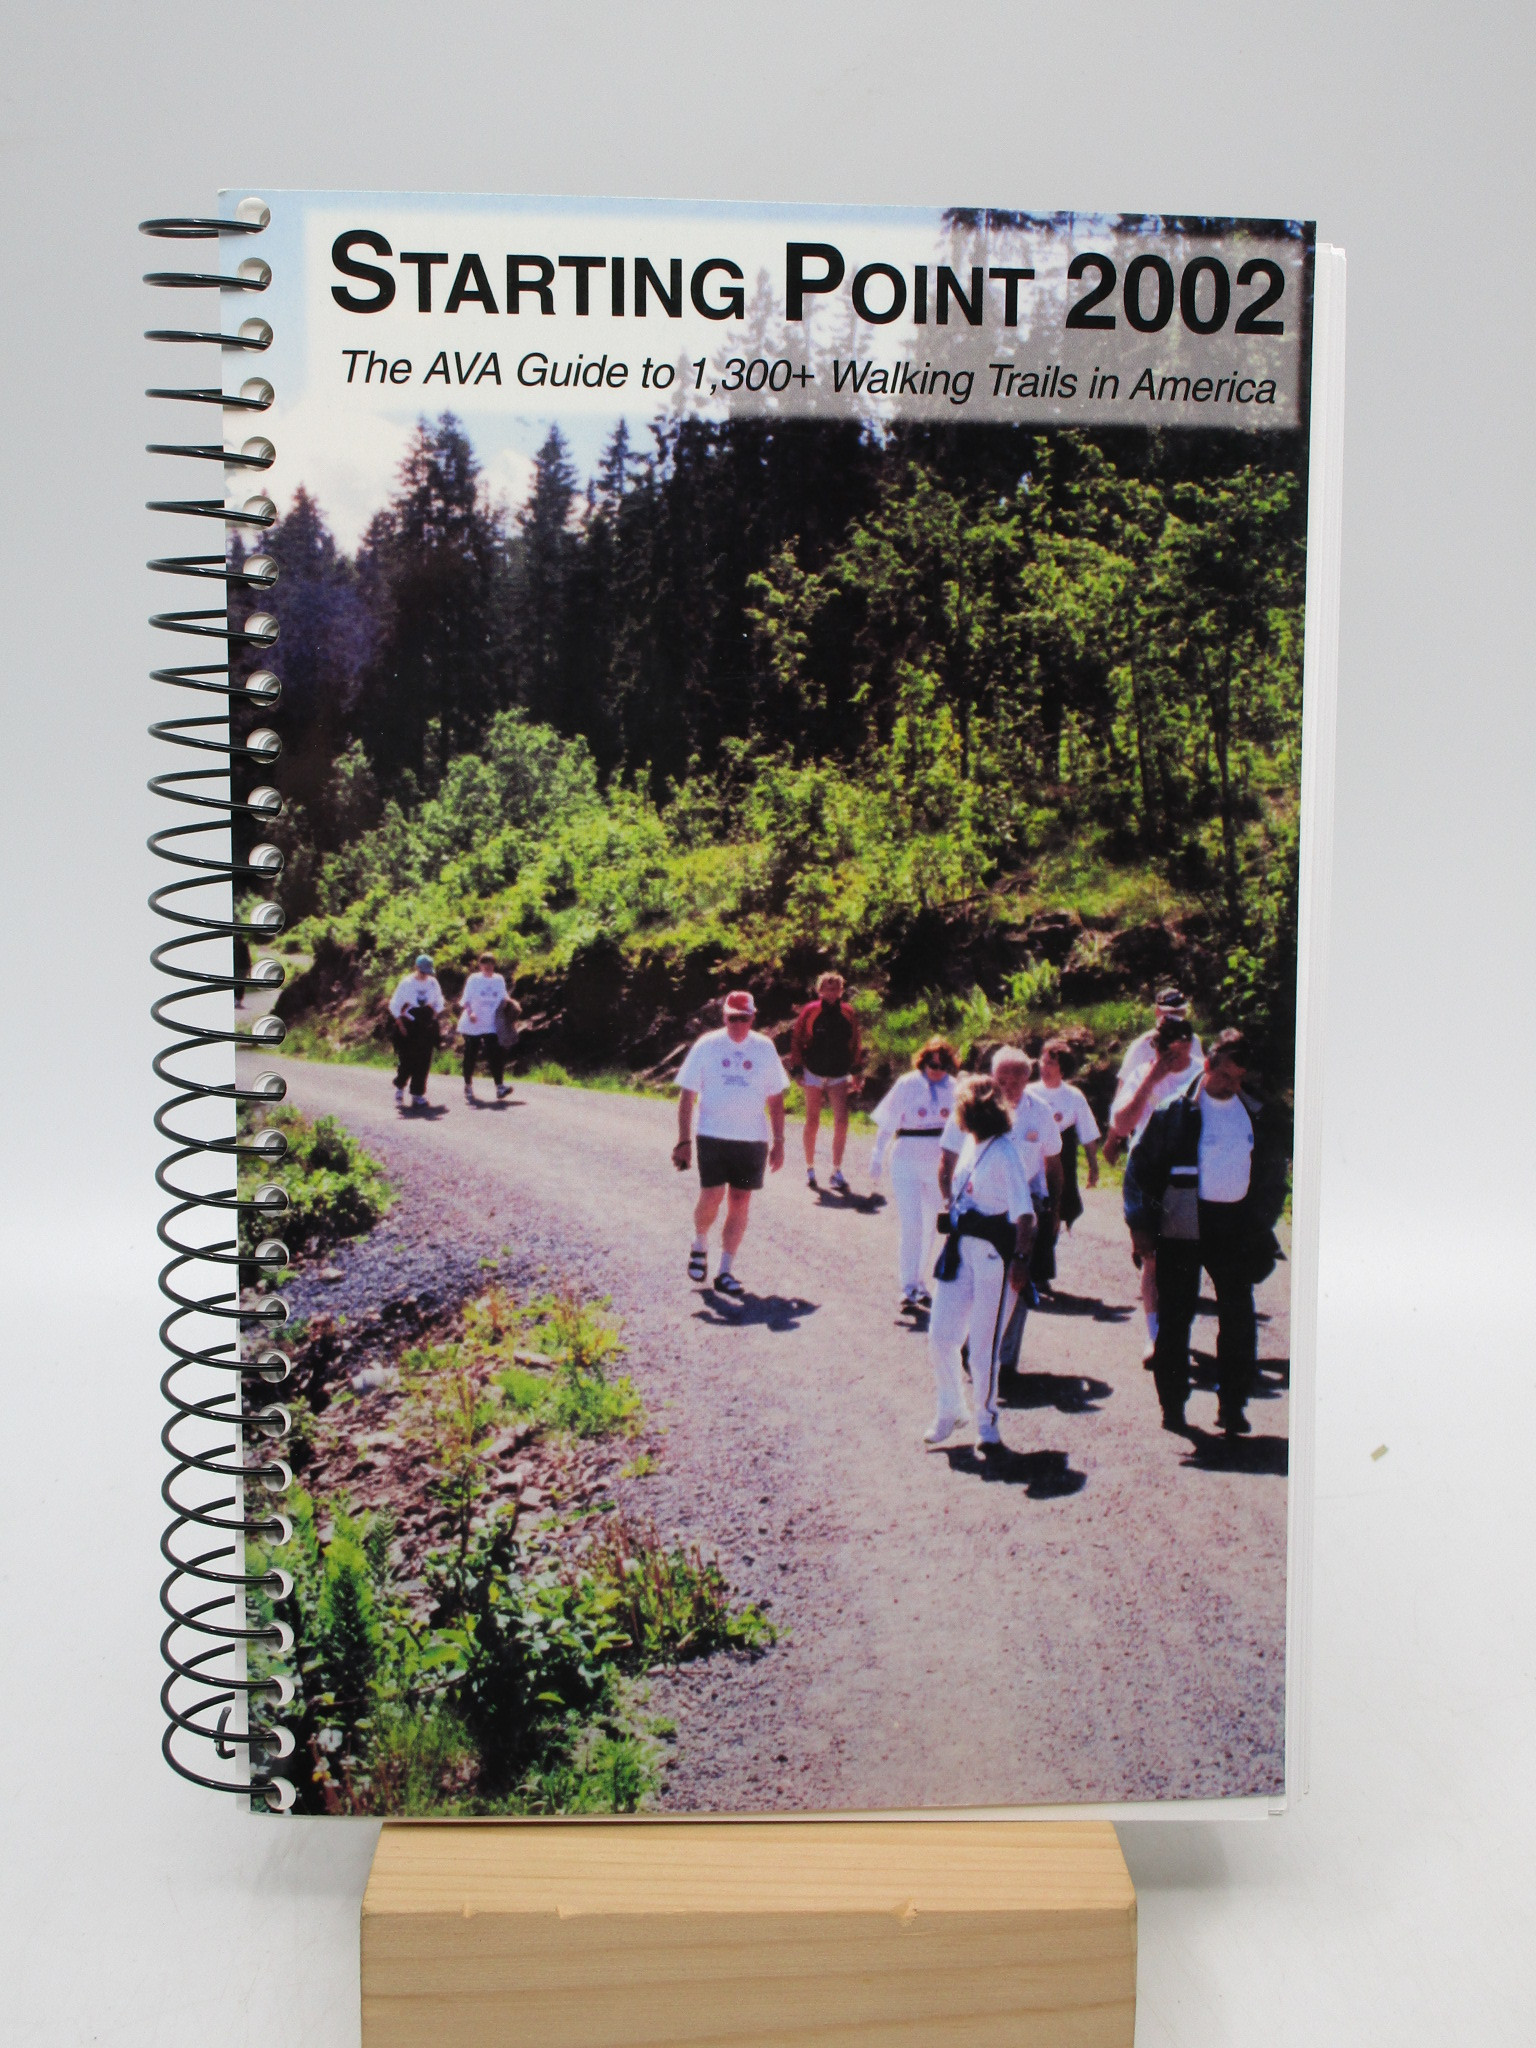 Image for Starting Point 2002: The AVA Guide to 1,300+ Walking Trails of America